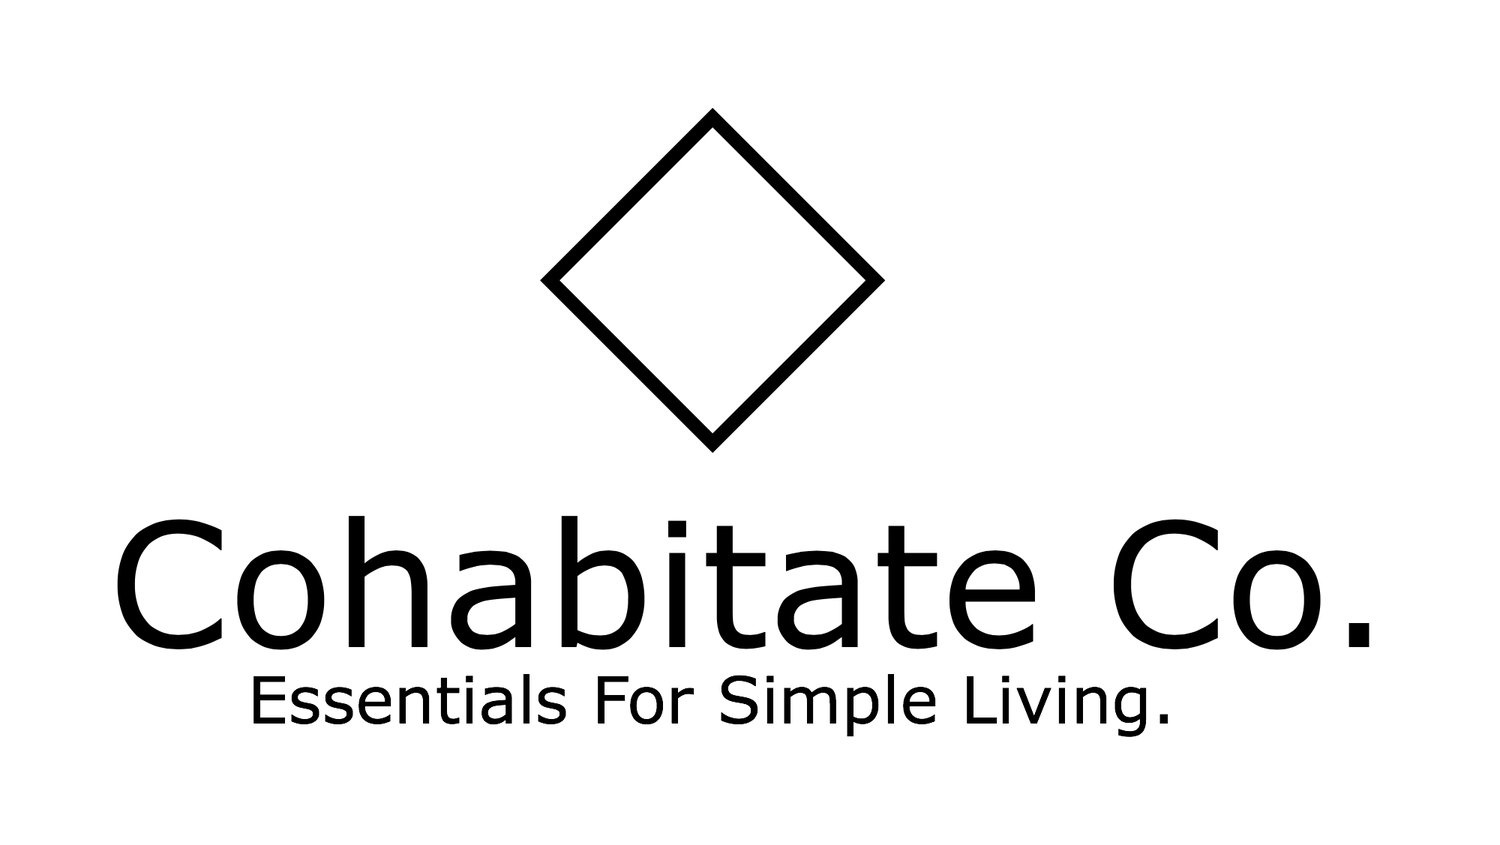 Cohabitate Co.